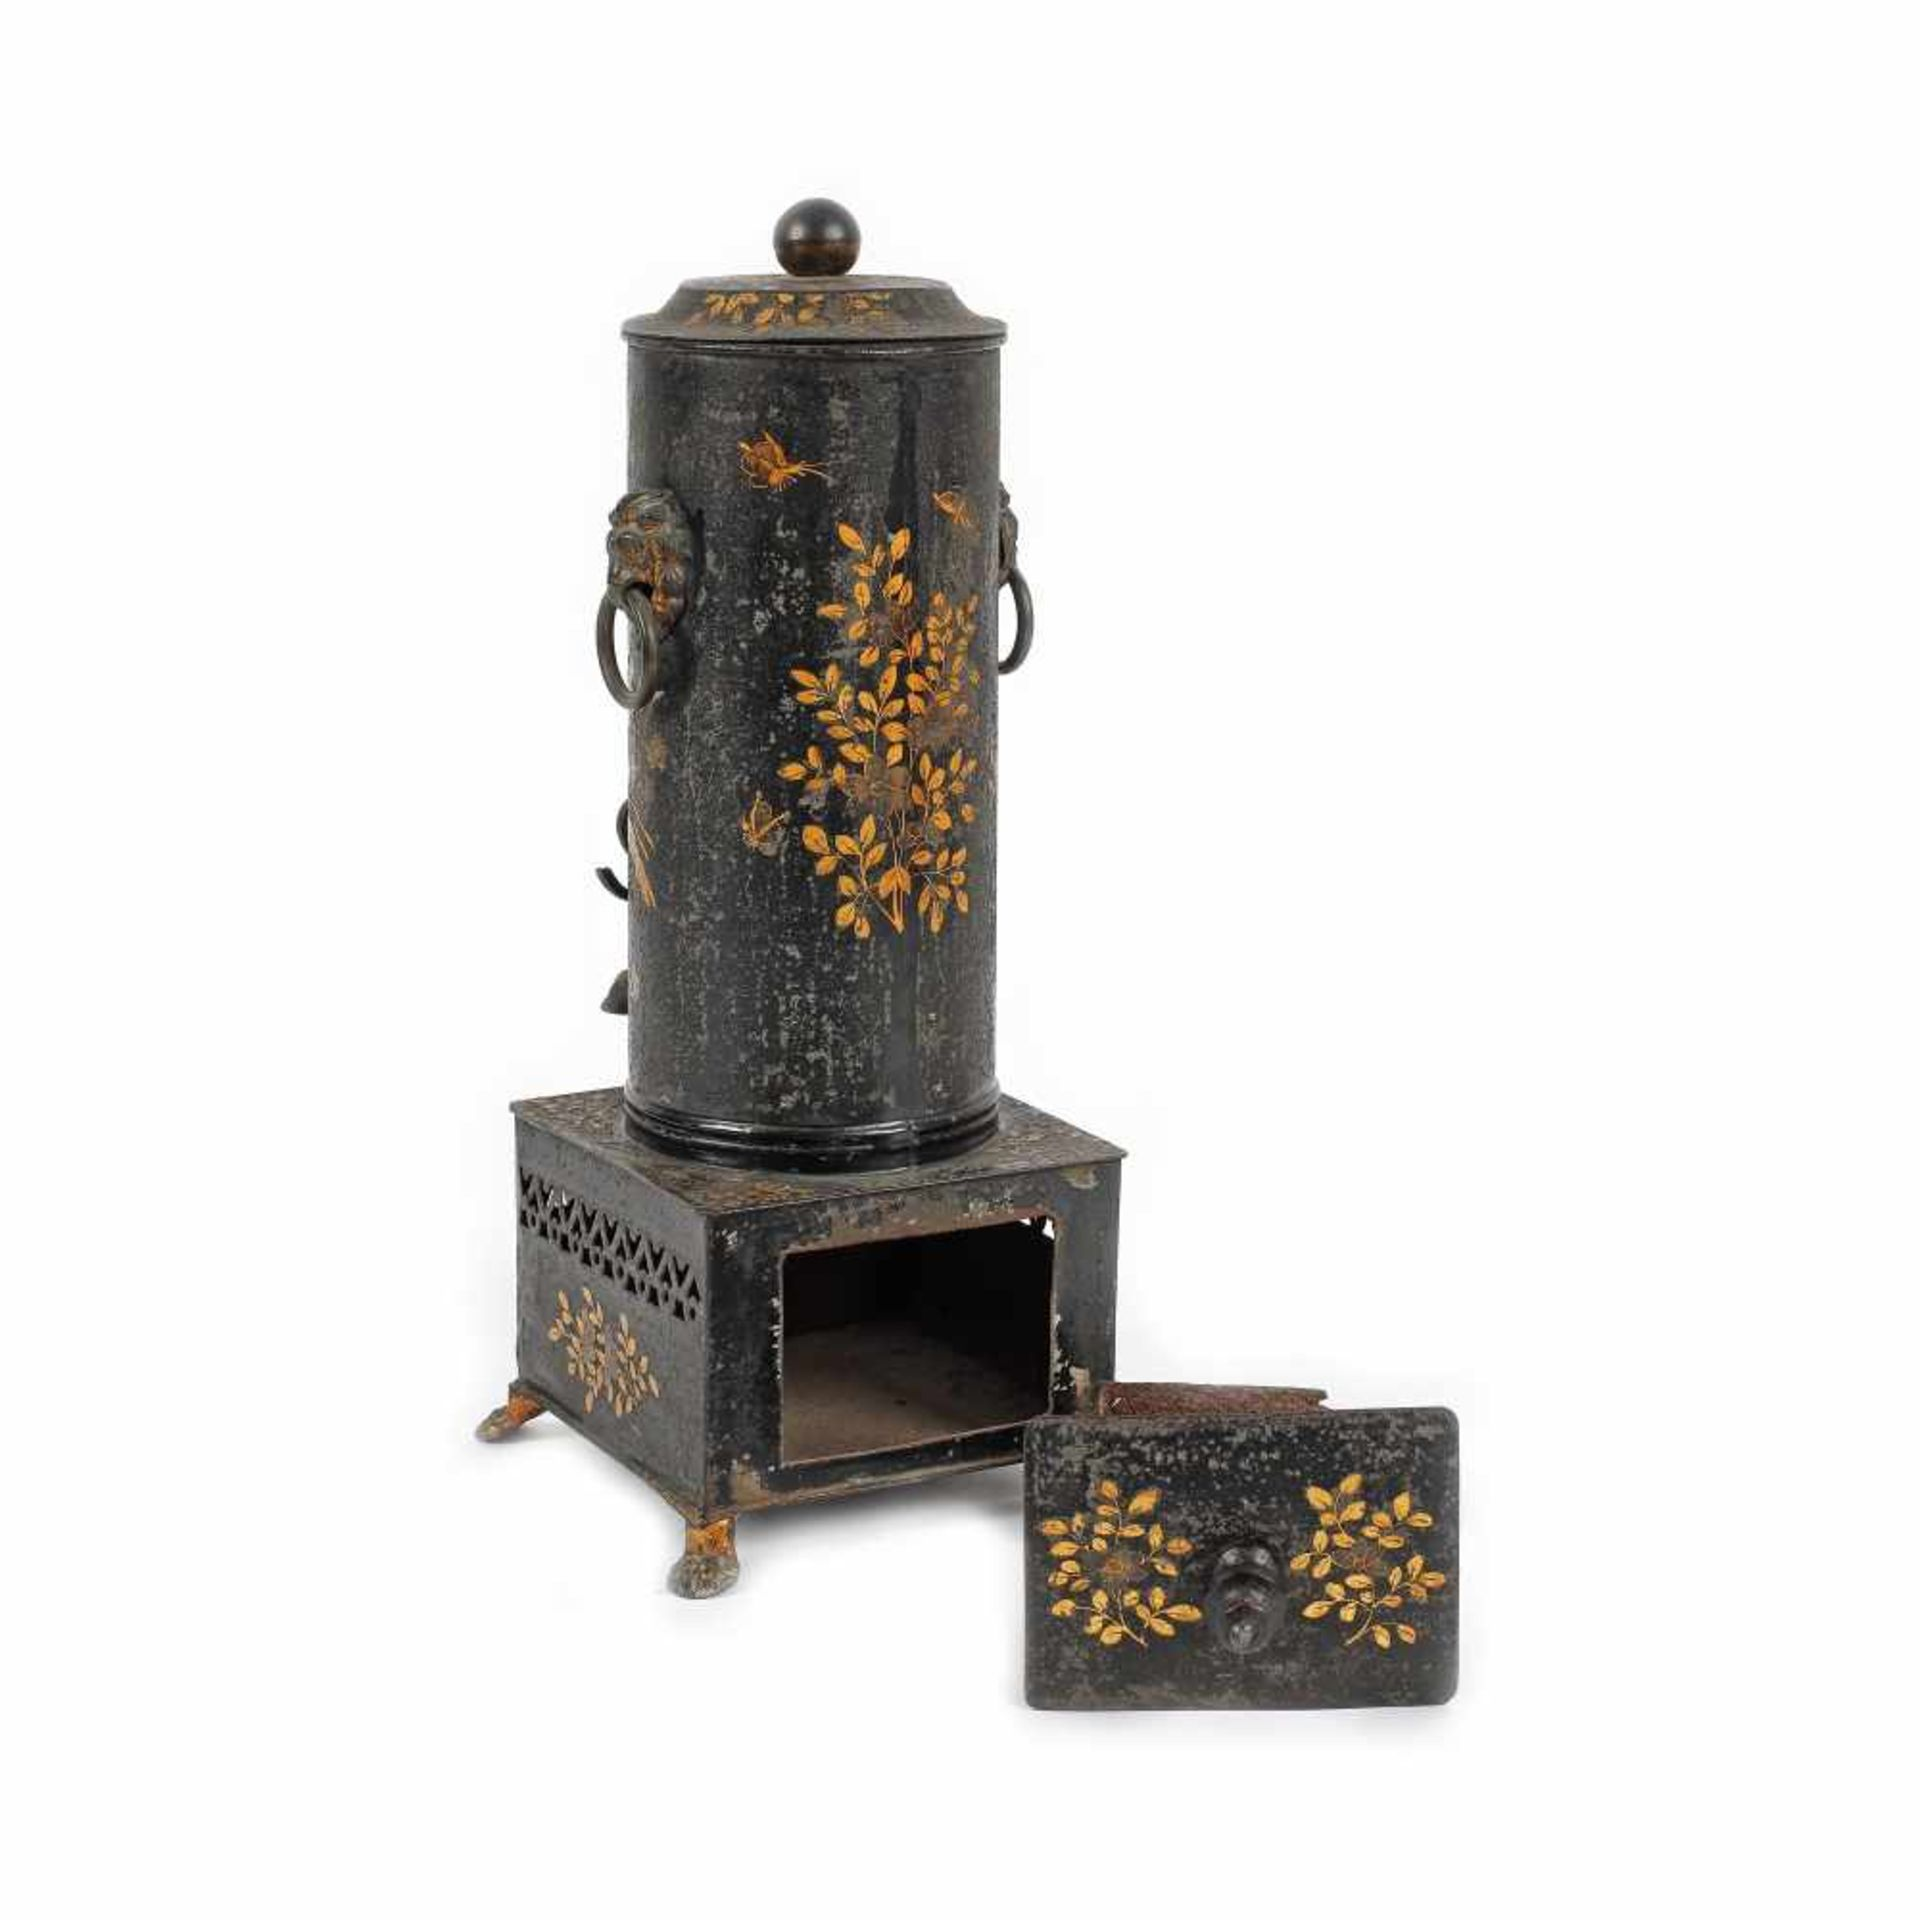 Coffee maker decorated with floral motifs, possibly France, early 20th century - Bild 3 aus 3